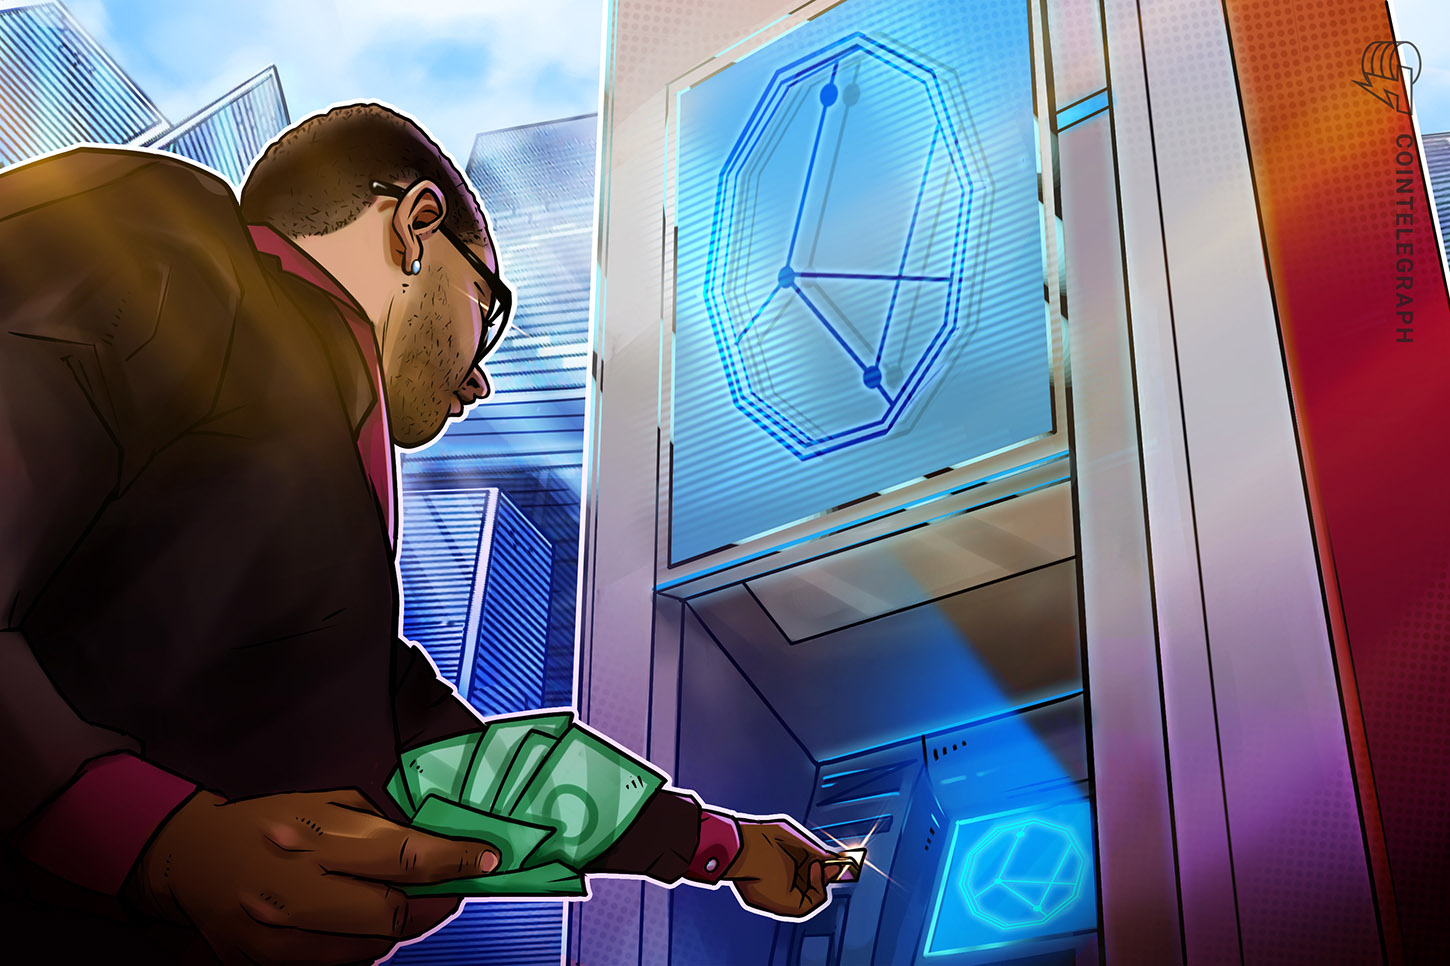 Circle K convenience stores will host thousands of crypto ATMs